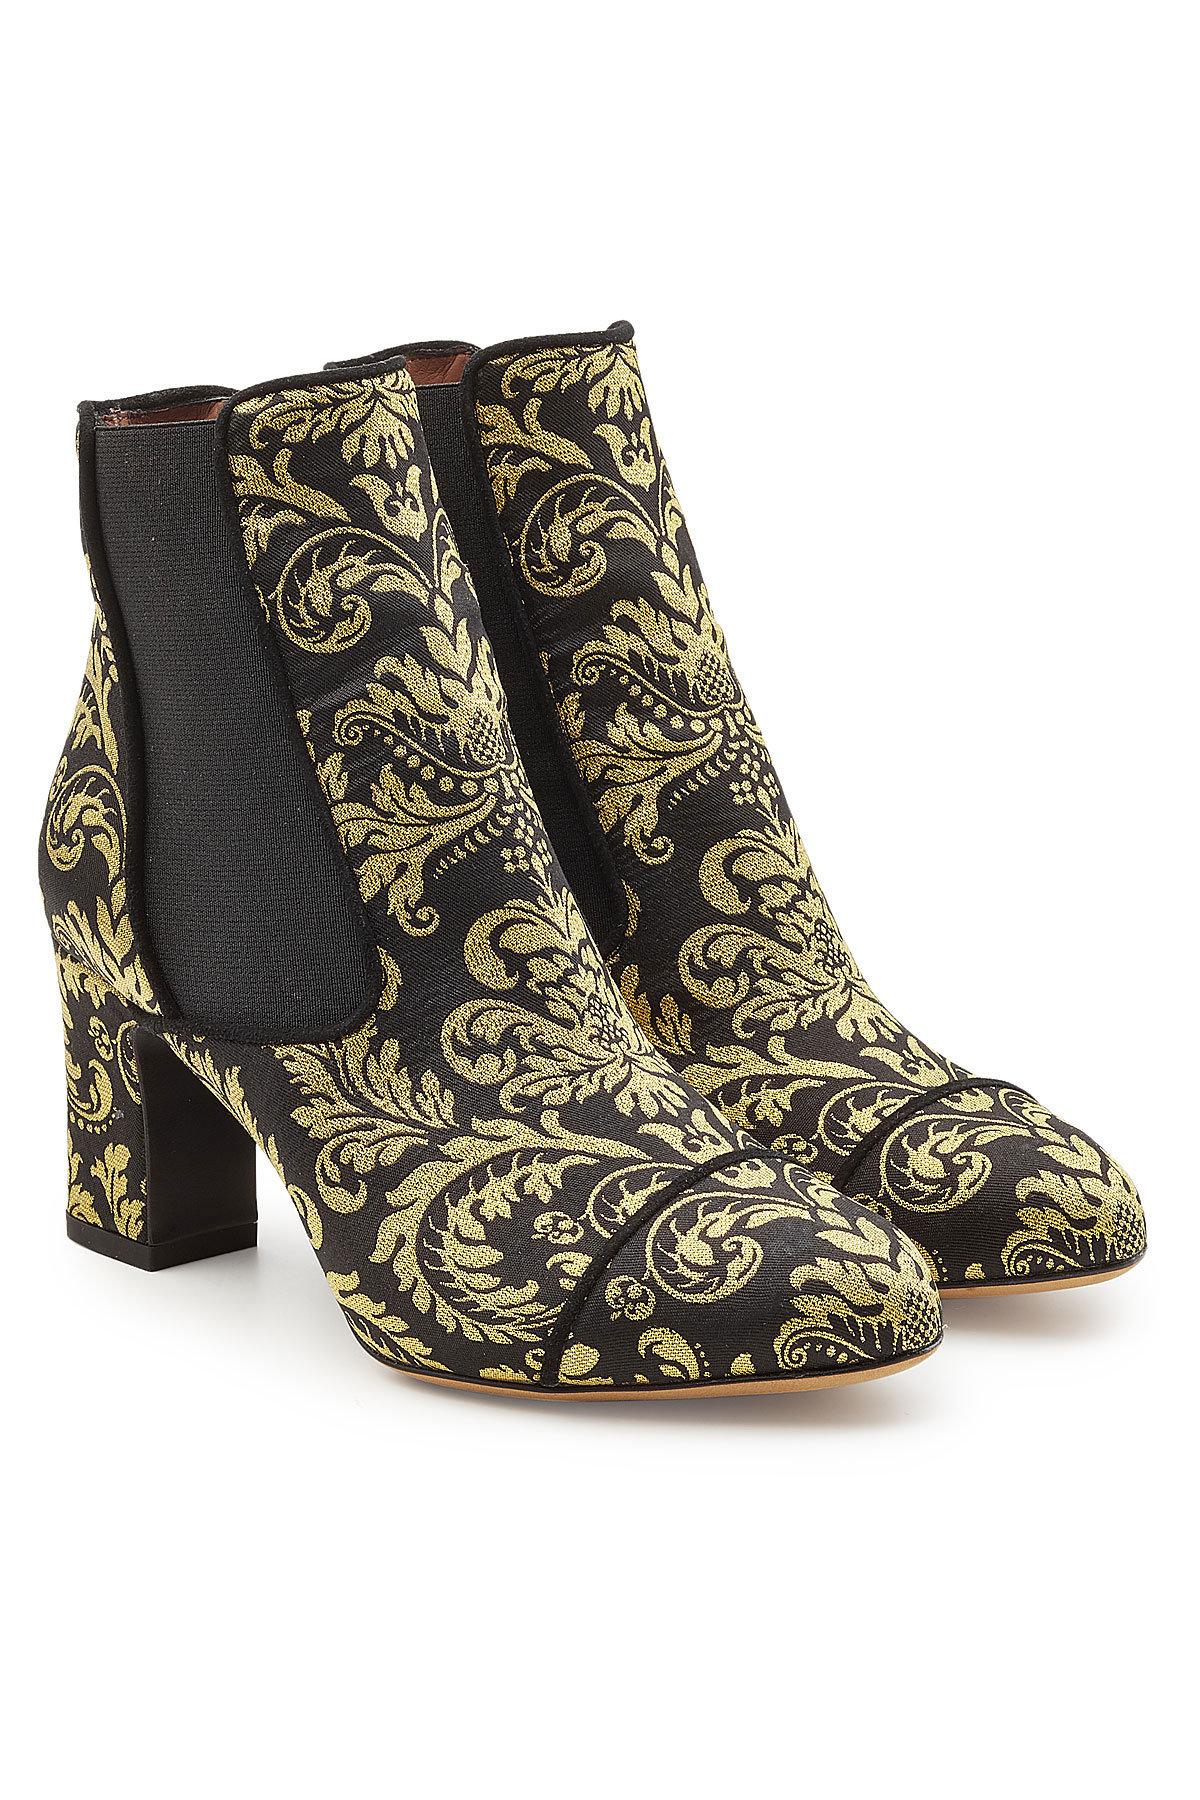 Tabitha Simmons Kiki Damask Printed Ankle Boots In Multicolored